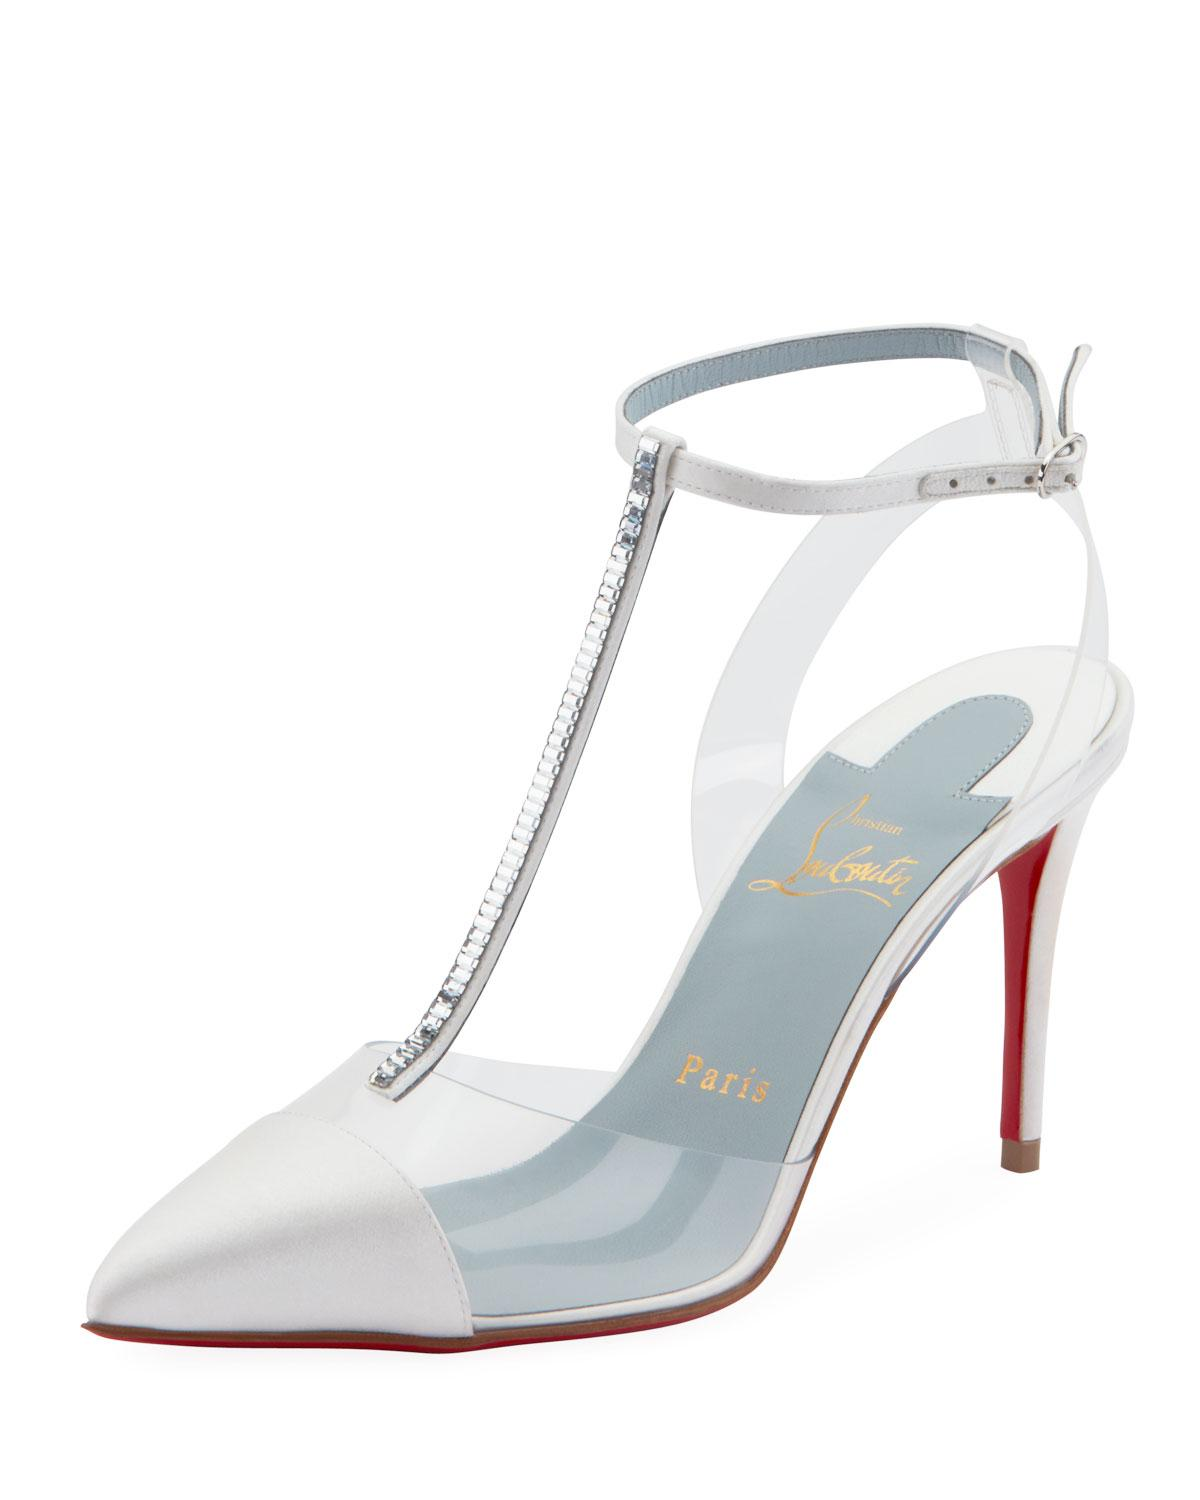 7855ccde080 Lyst - Christian Louboutin Nosy Strass T-strap Red Sole Pumps in White